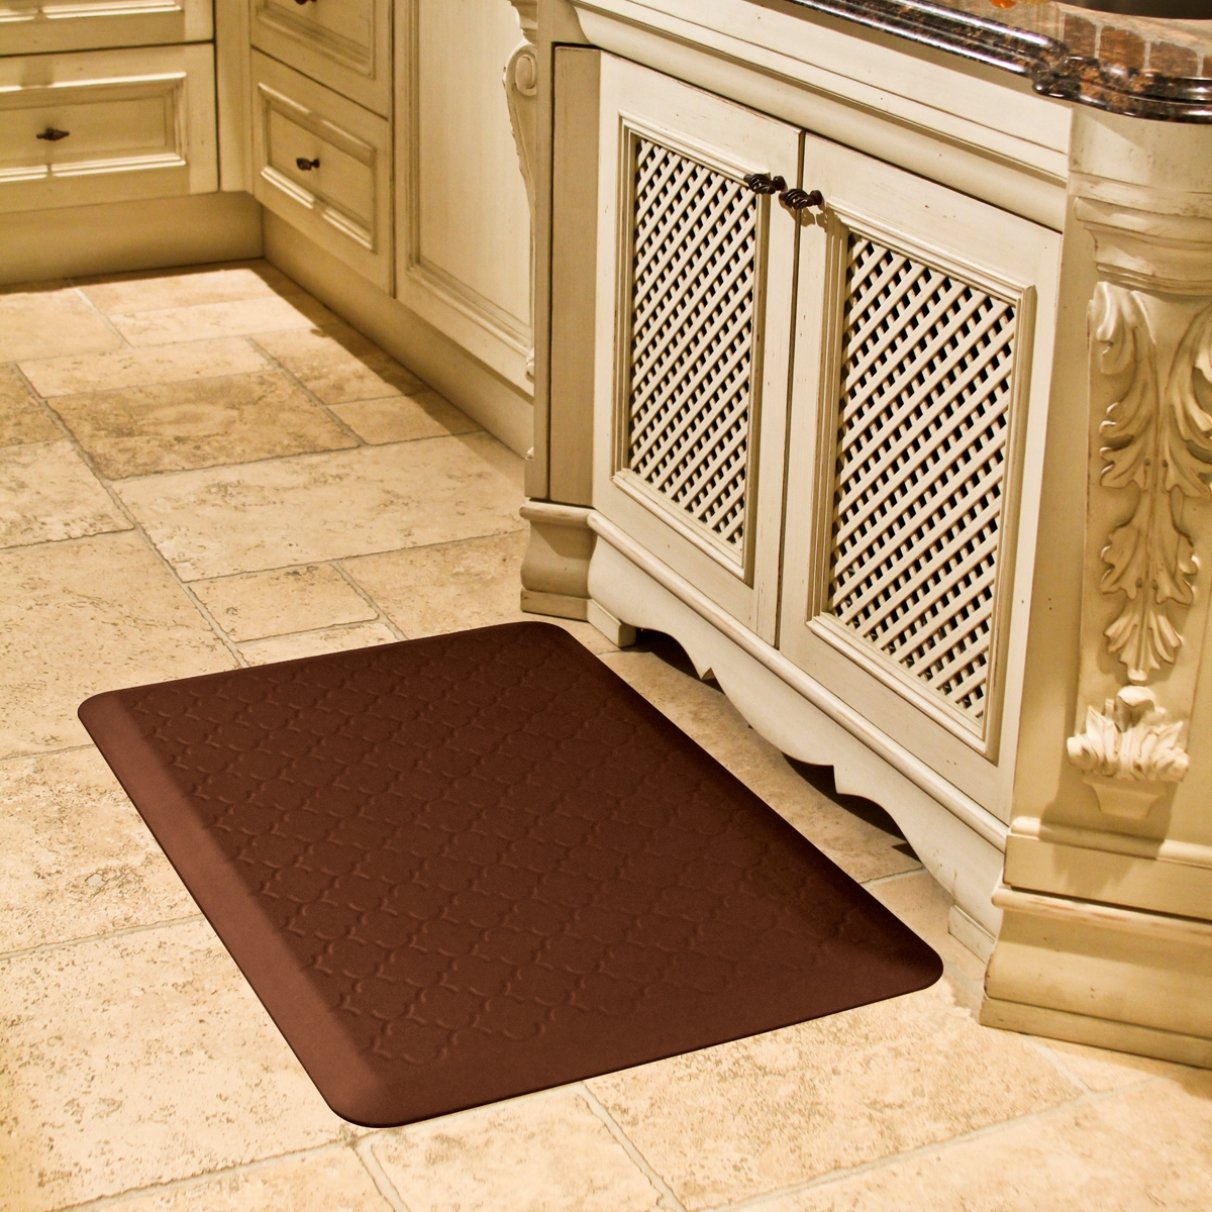 Charmant Amazon.com: WellnessMats Anti Fatigue Trellis Motif Kitchen Mat, 36 Inch By  24 Inch, Brown: Kitchen U0026 Dining